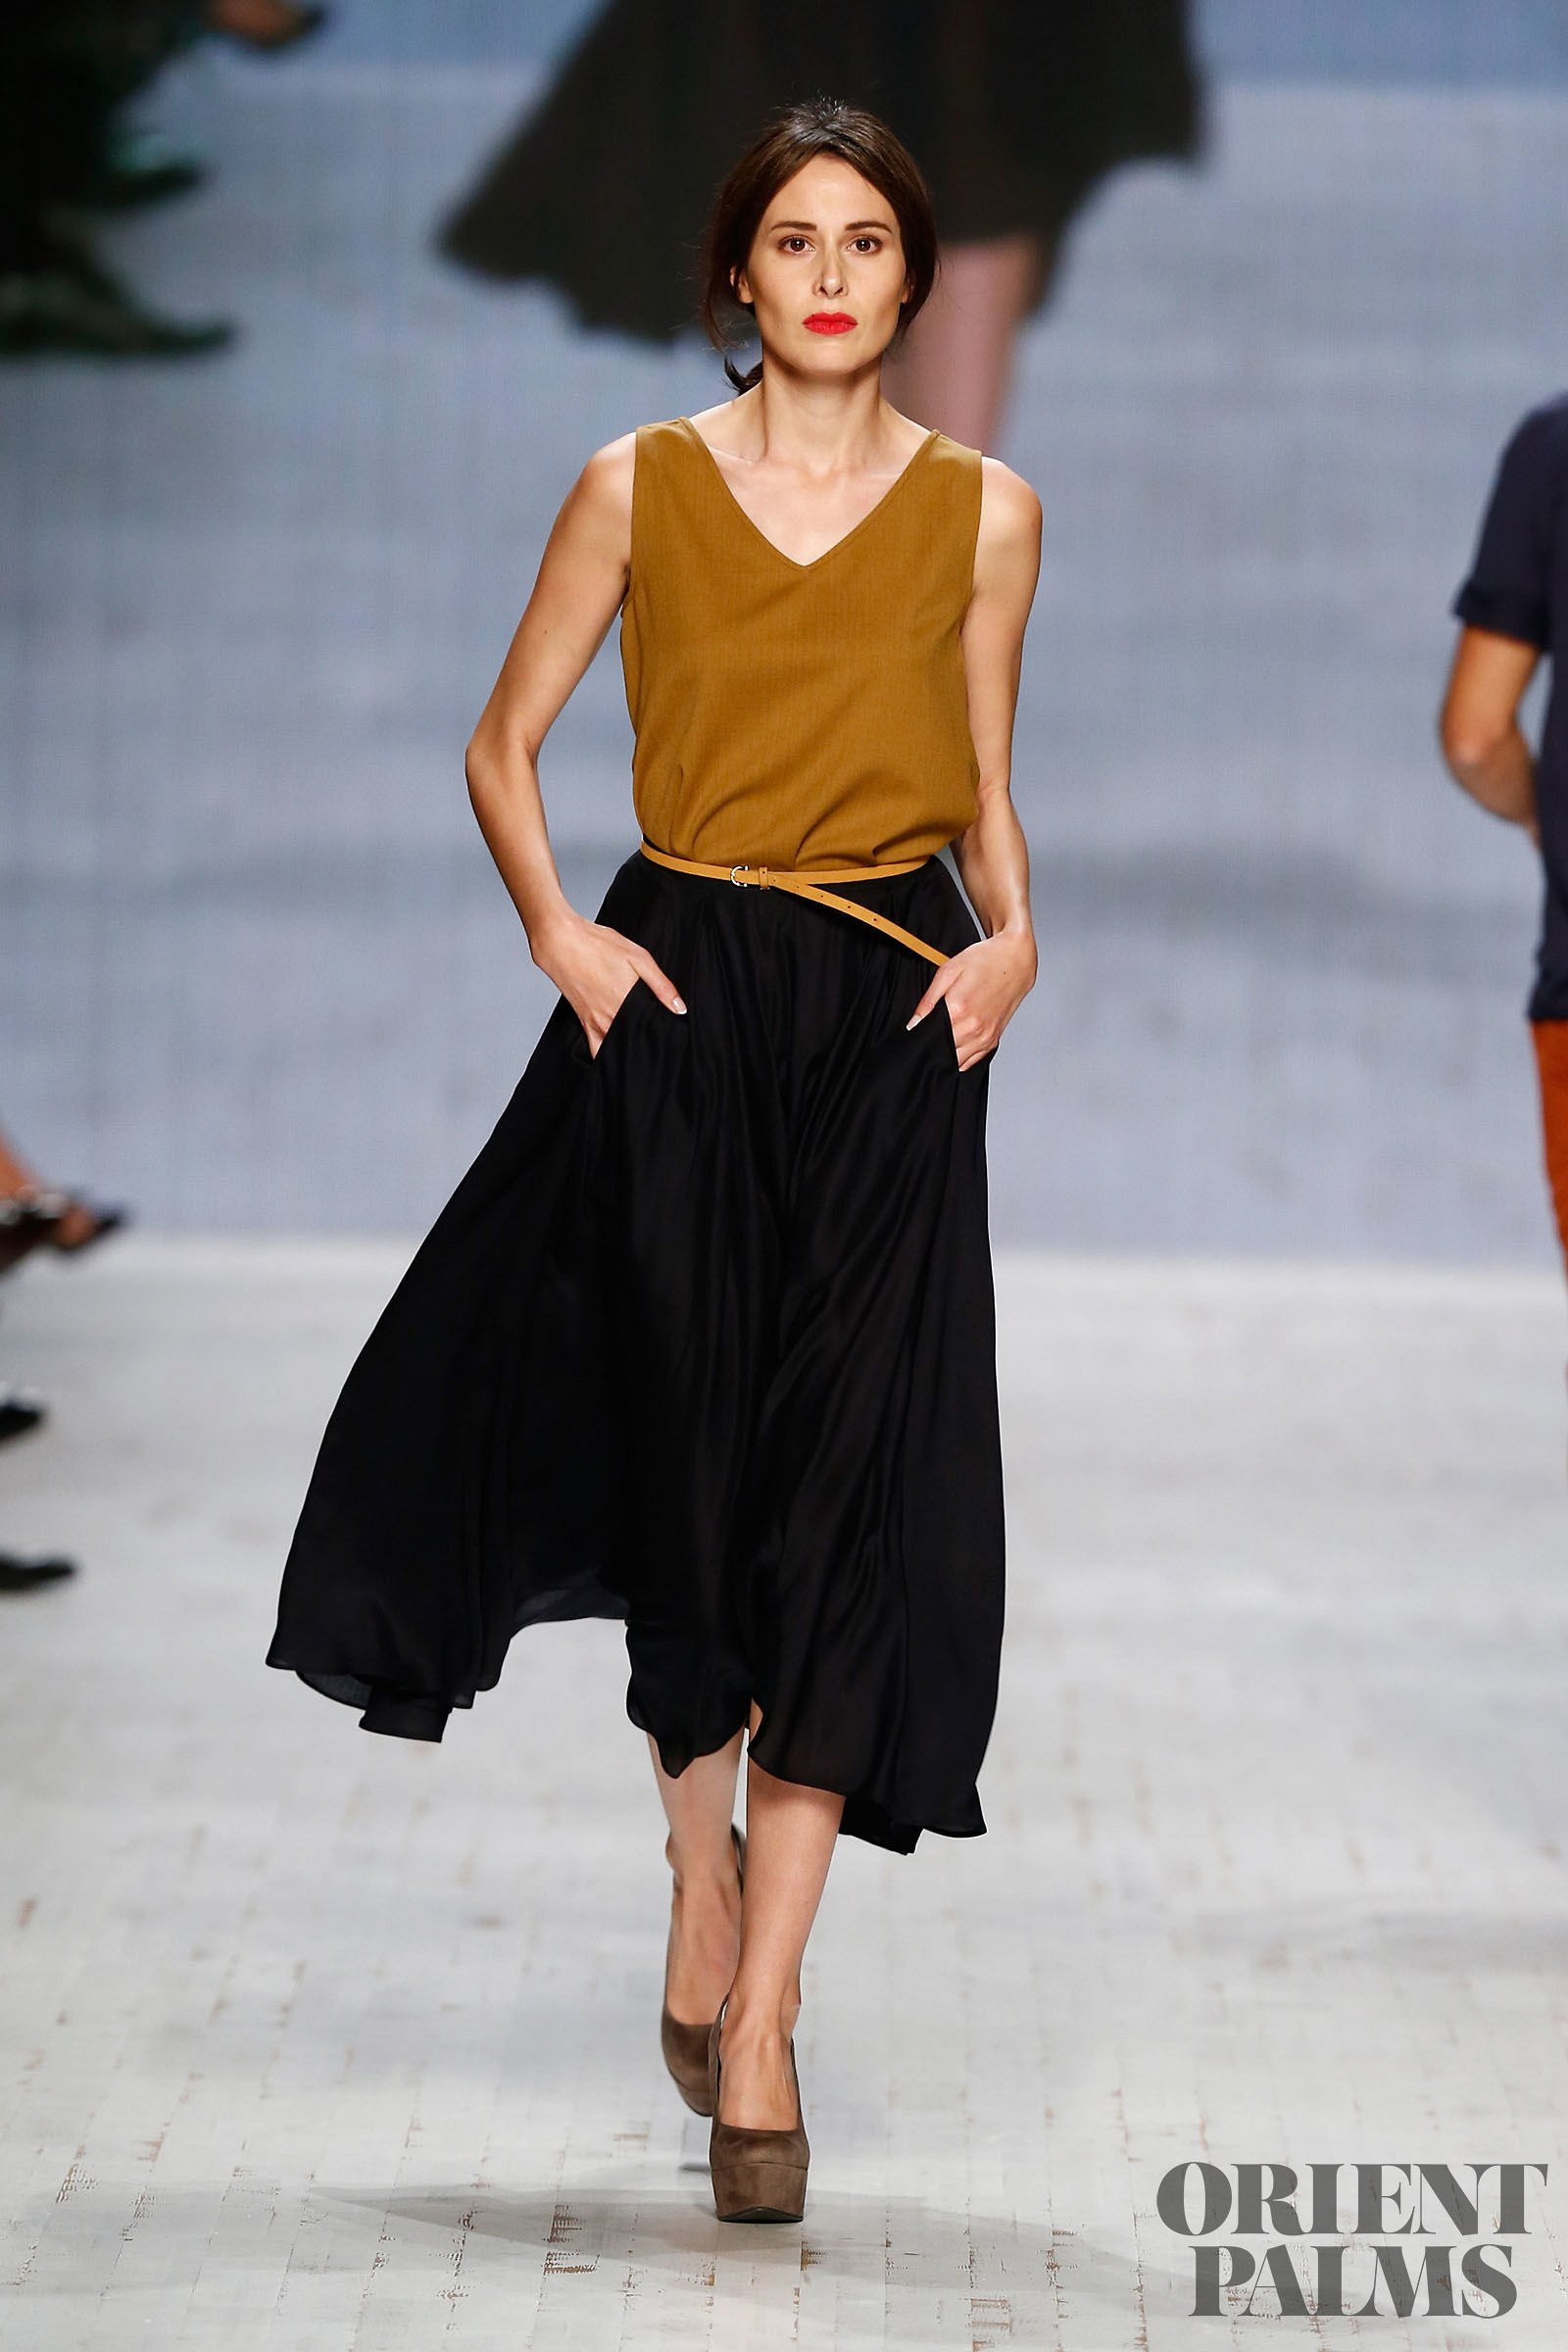 Pamb Spring-summer 2014 - Ready-to-Wear